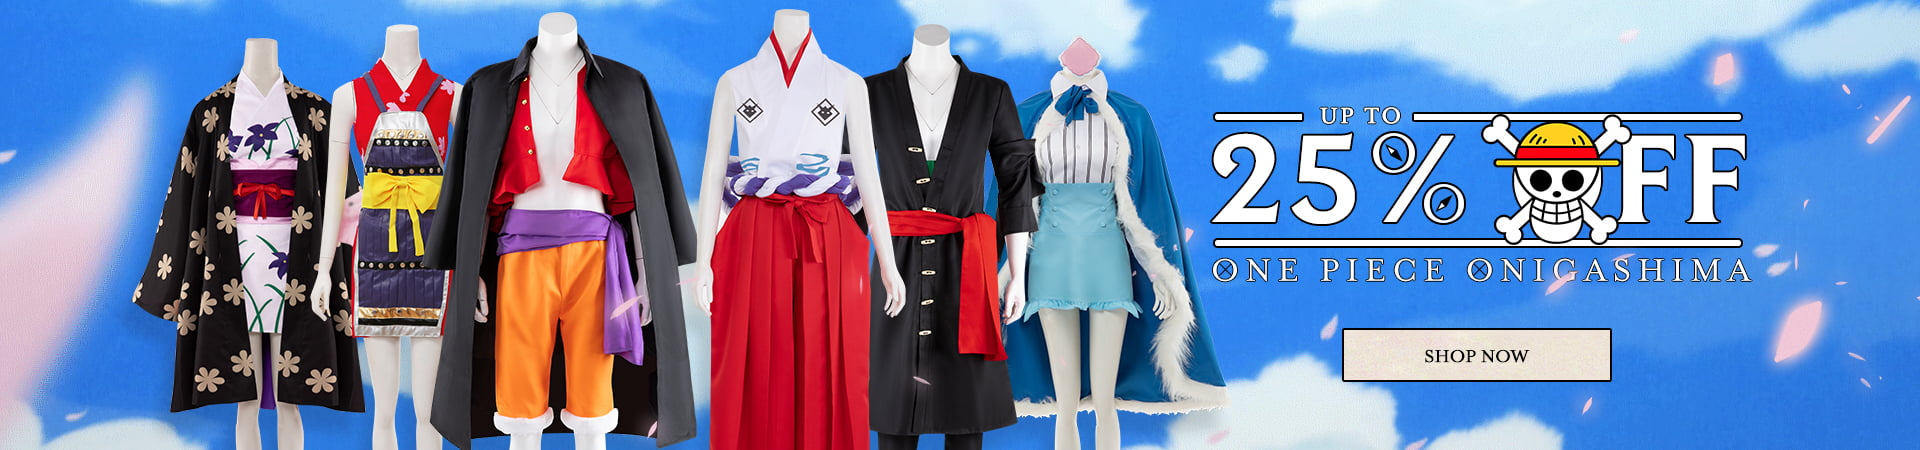 Up To 25% Off Coupon code for One Piece Onigashima